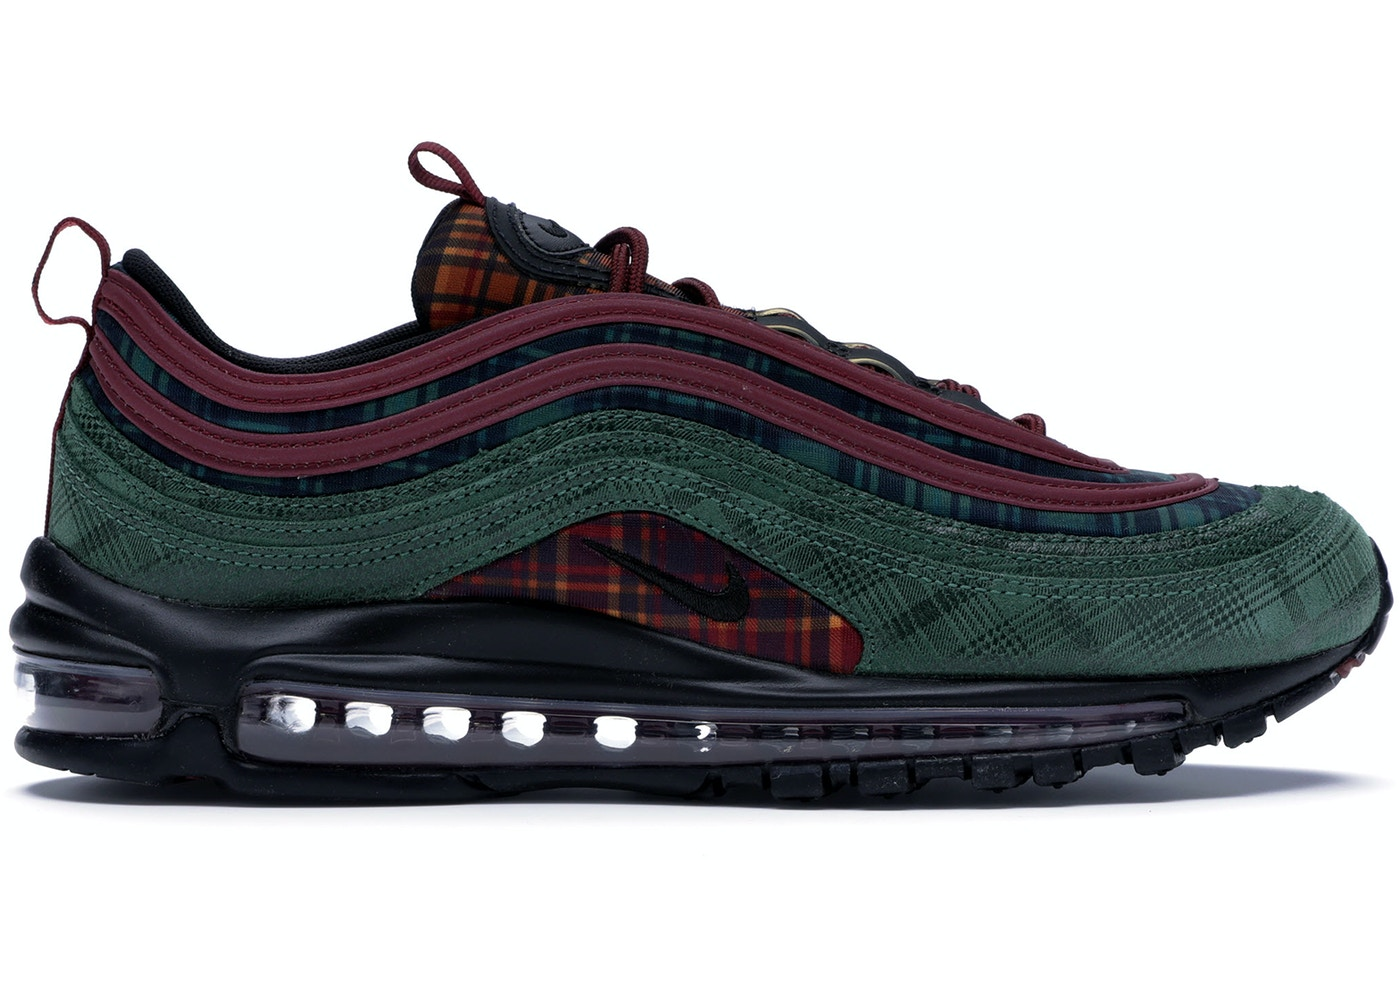 e6a94abf9df Air Max 97 Jacket Pack - AT6145-600